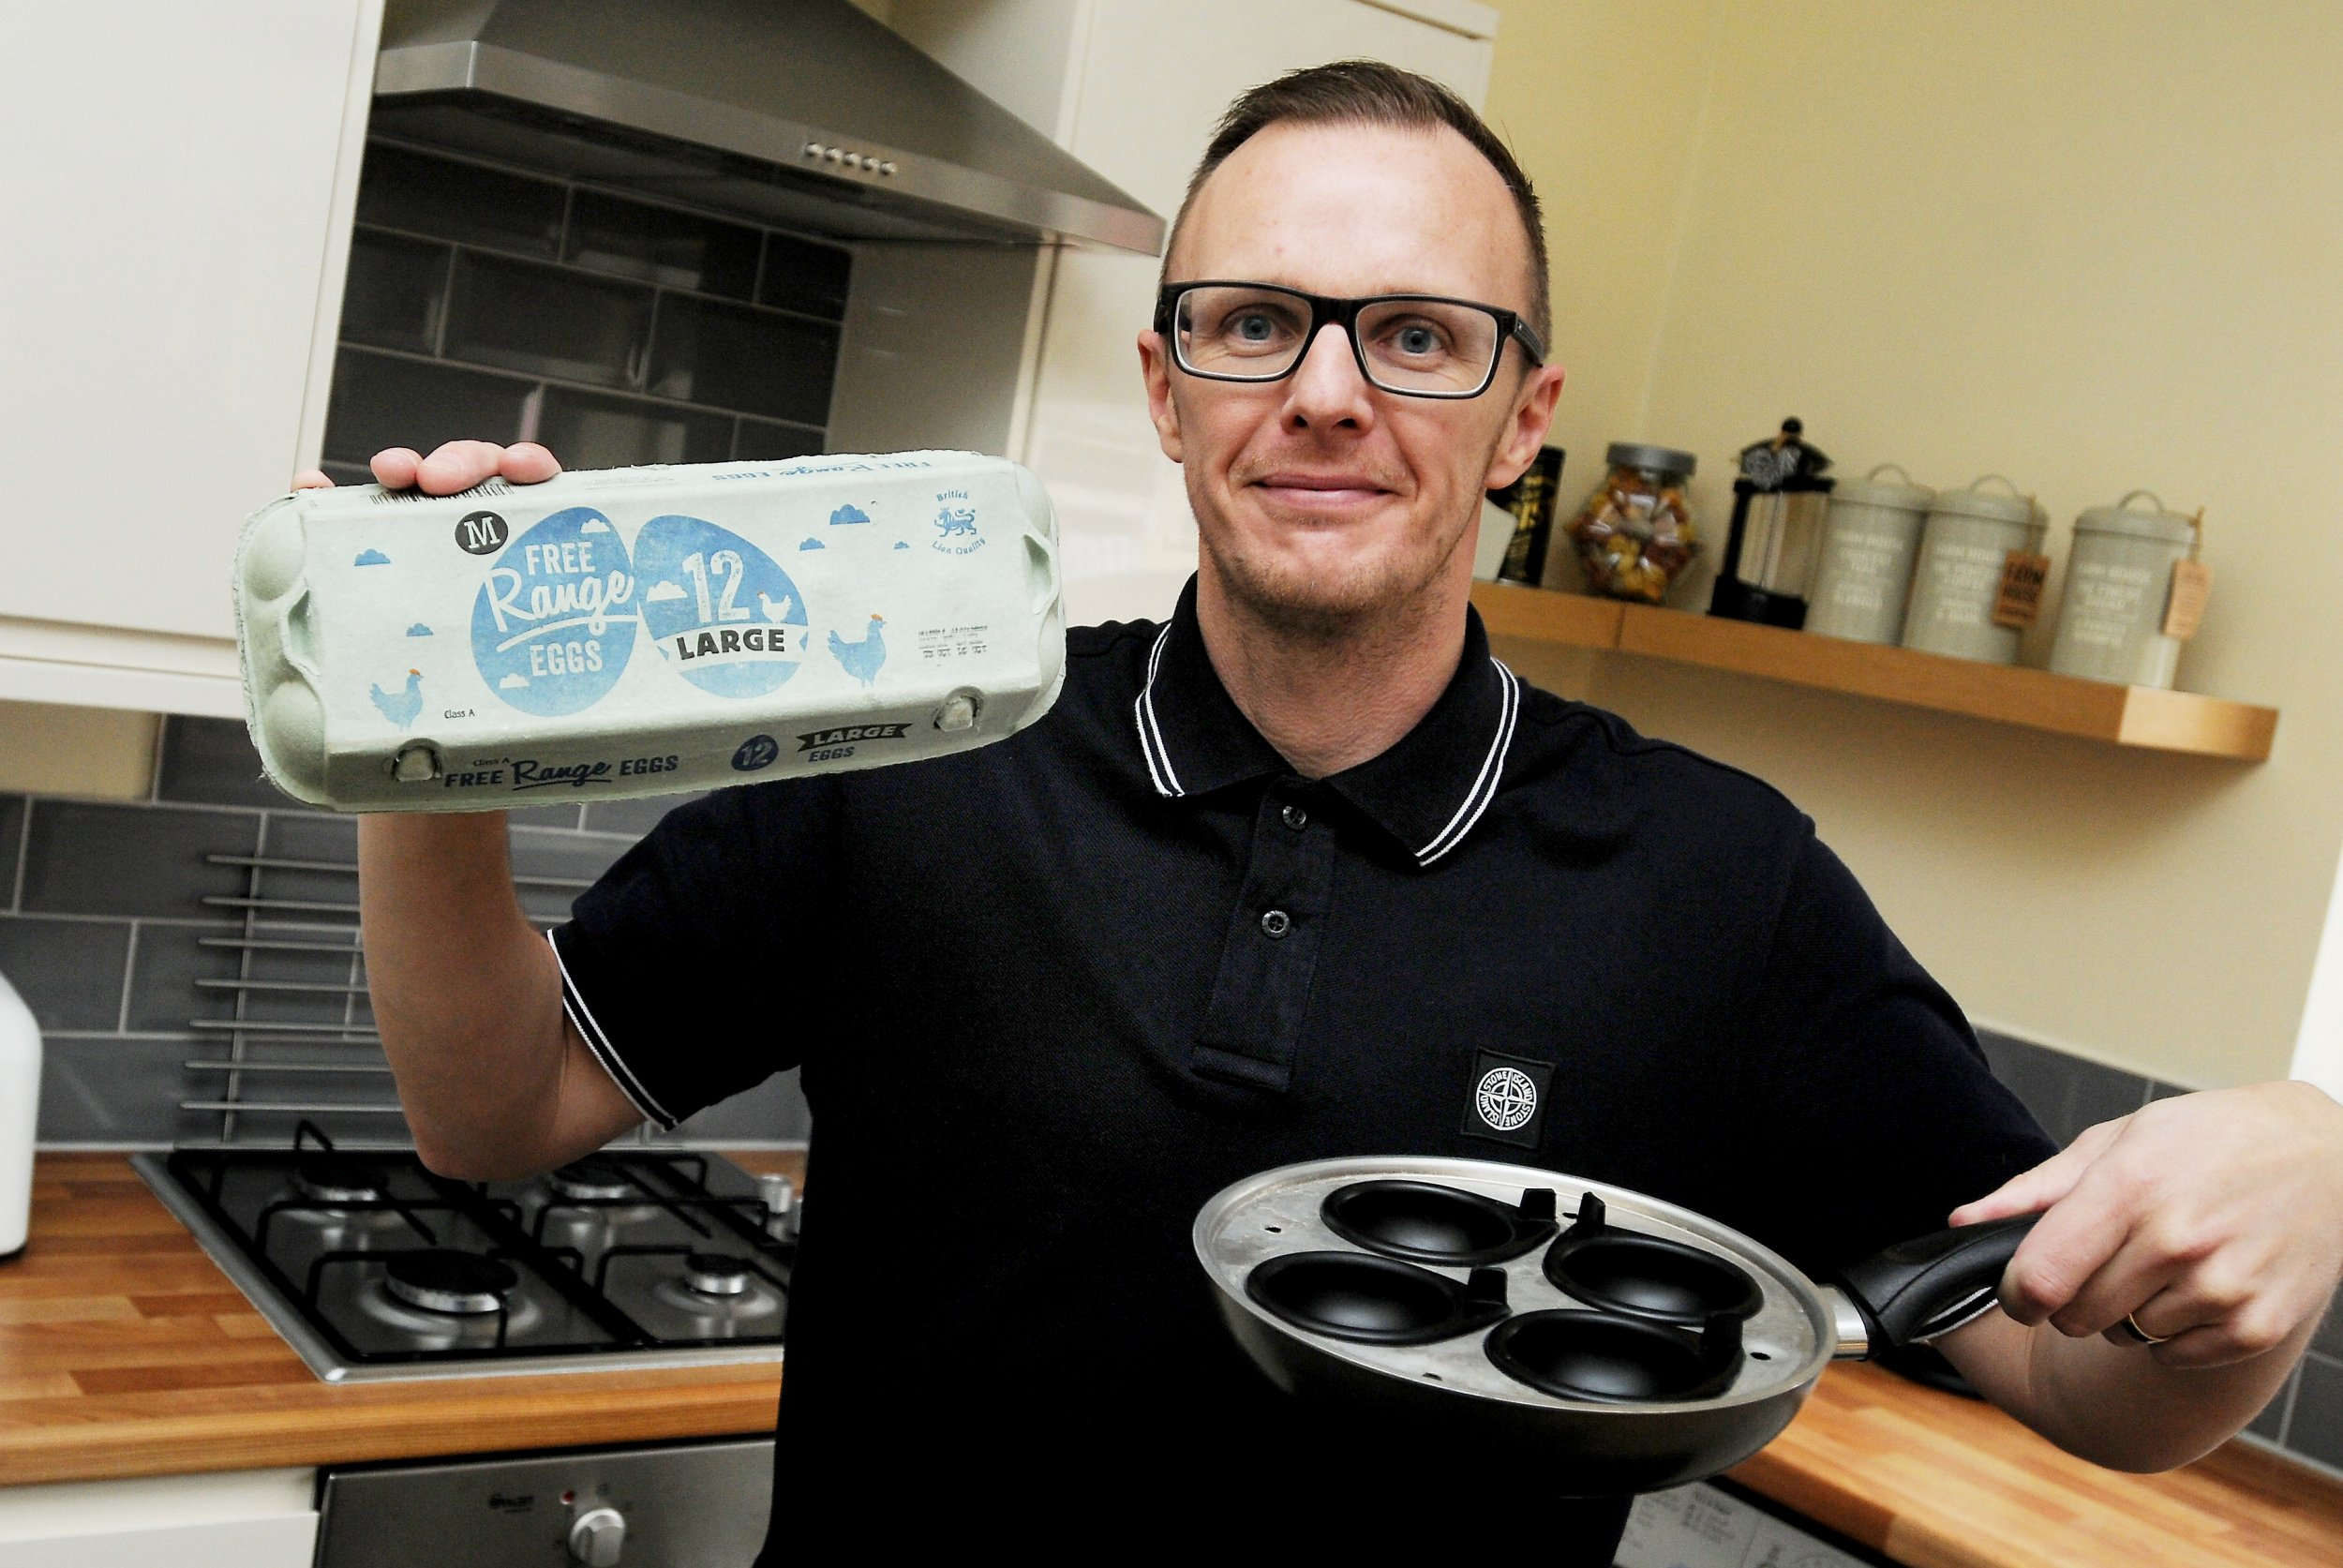 """John Landy who cracked 10 double-egg yolks from the same box, it's thought that one double egg-yolk is very rare, 1,000 to one. A family man beat huge odds when he cracked open TEN eggs only to find they all had DOUBLE YOLKS. See ROSS PARRY story RPYEGGS. John Landy, 40, was totally gobmsacked when he cracked one egg, then another and another until he finished the box and realsied they were all rare double yolkers. The odds of finding ONE of the these scarce eggs is said to be 1,000 to one, so the odds on finding ten - in a row will be staggering. Dad-of-two John, said: """"When I got one double yolk, I was quite surprised because I had never see one before."""